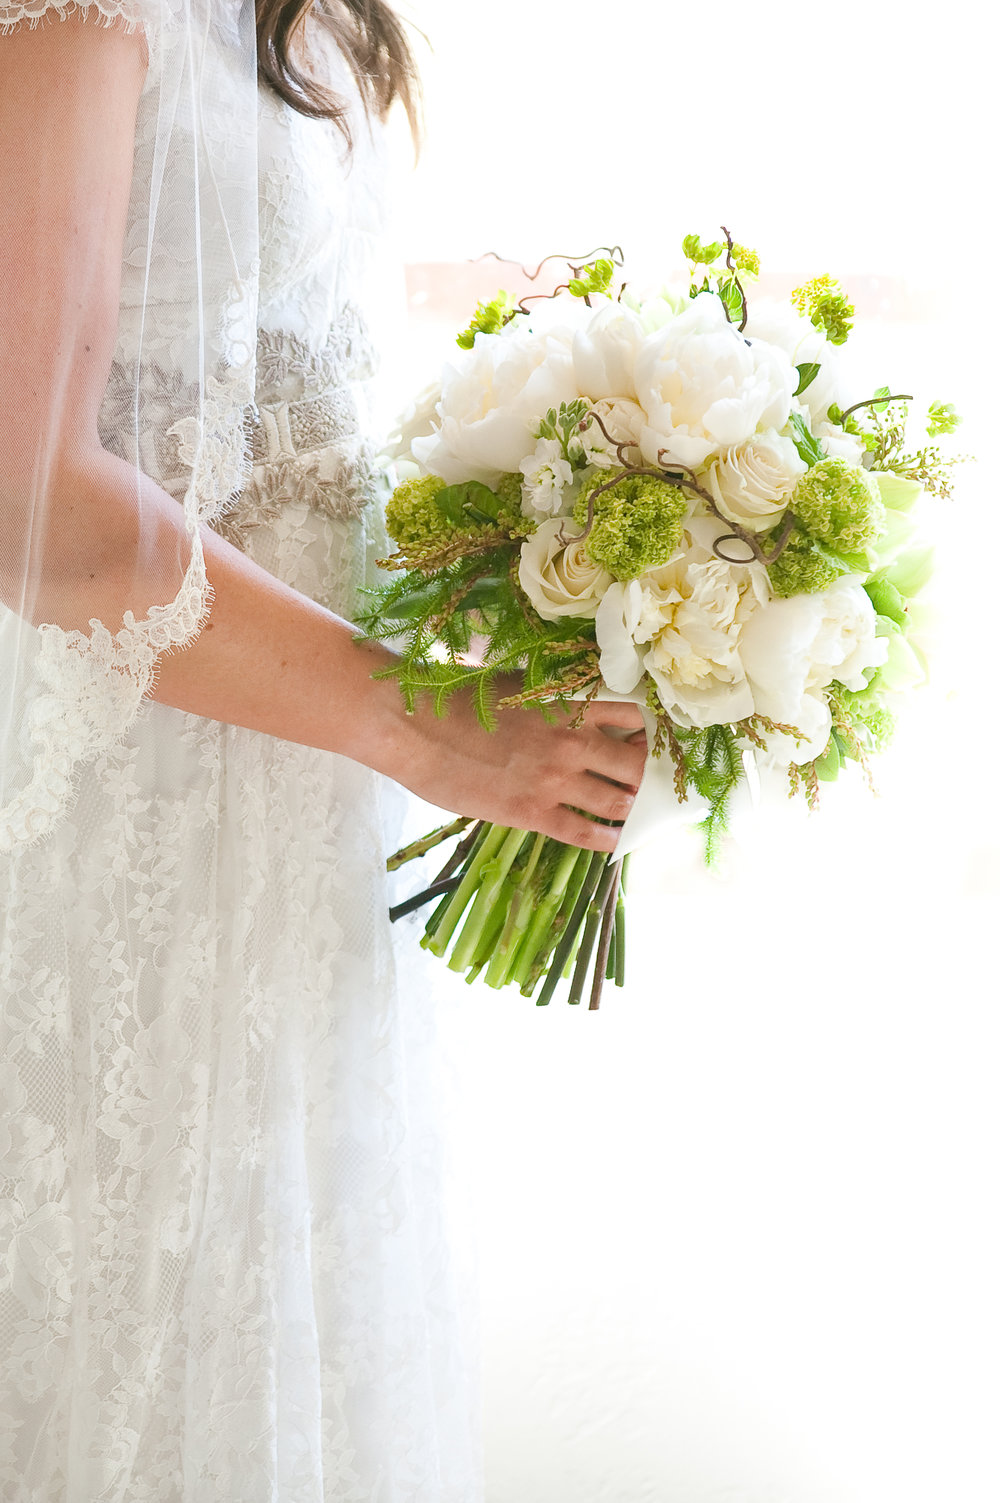 Lush green and white bouquet by Parie Designs